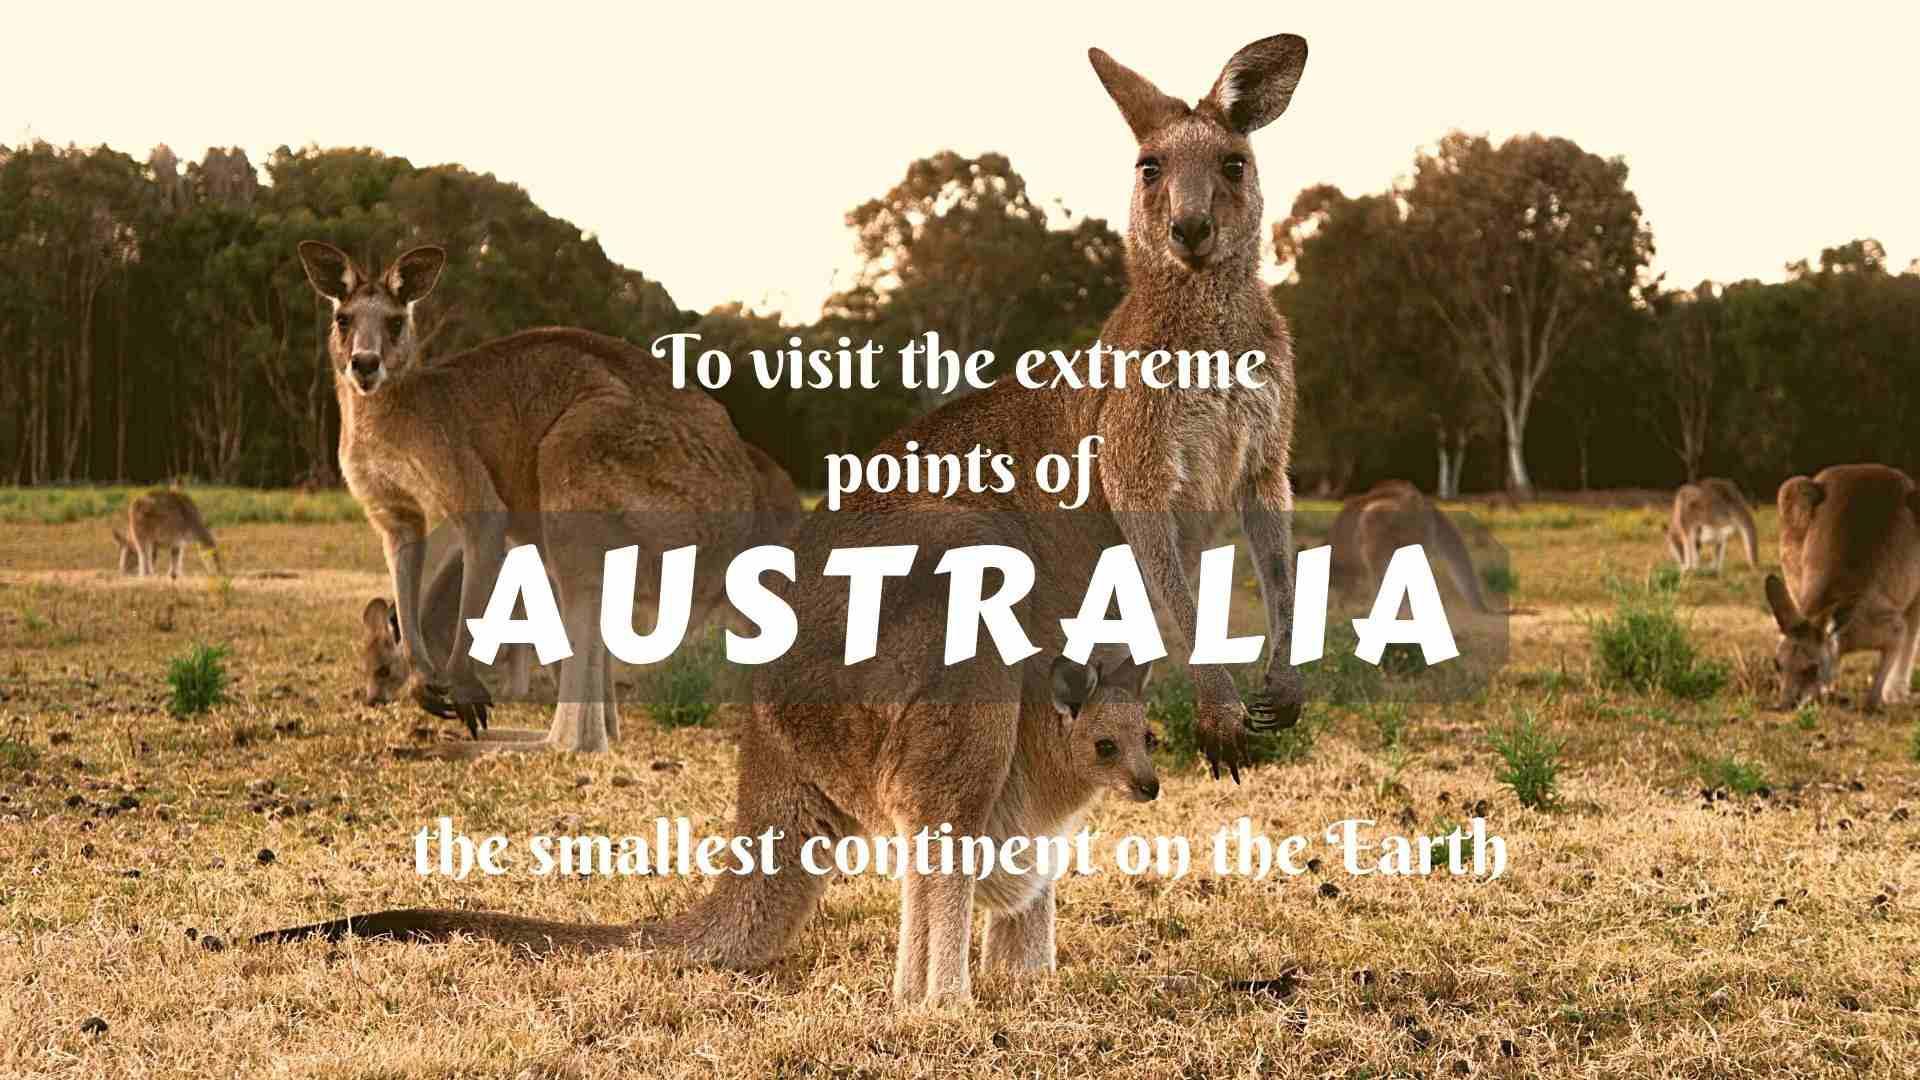 To visit the extreme points of Australia- the smallest continent on the Earth